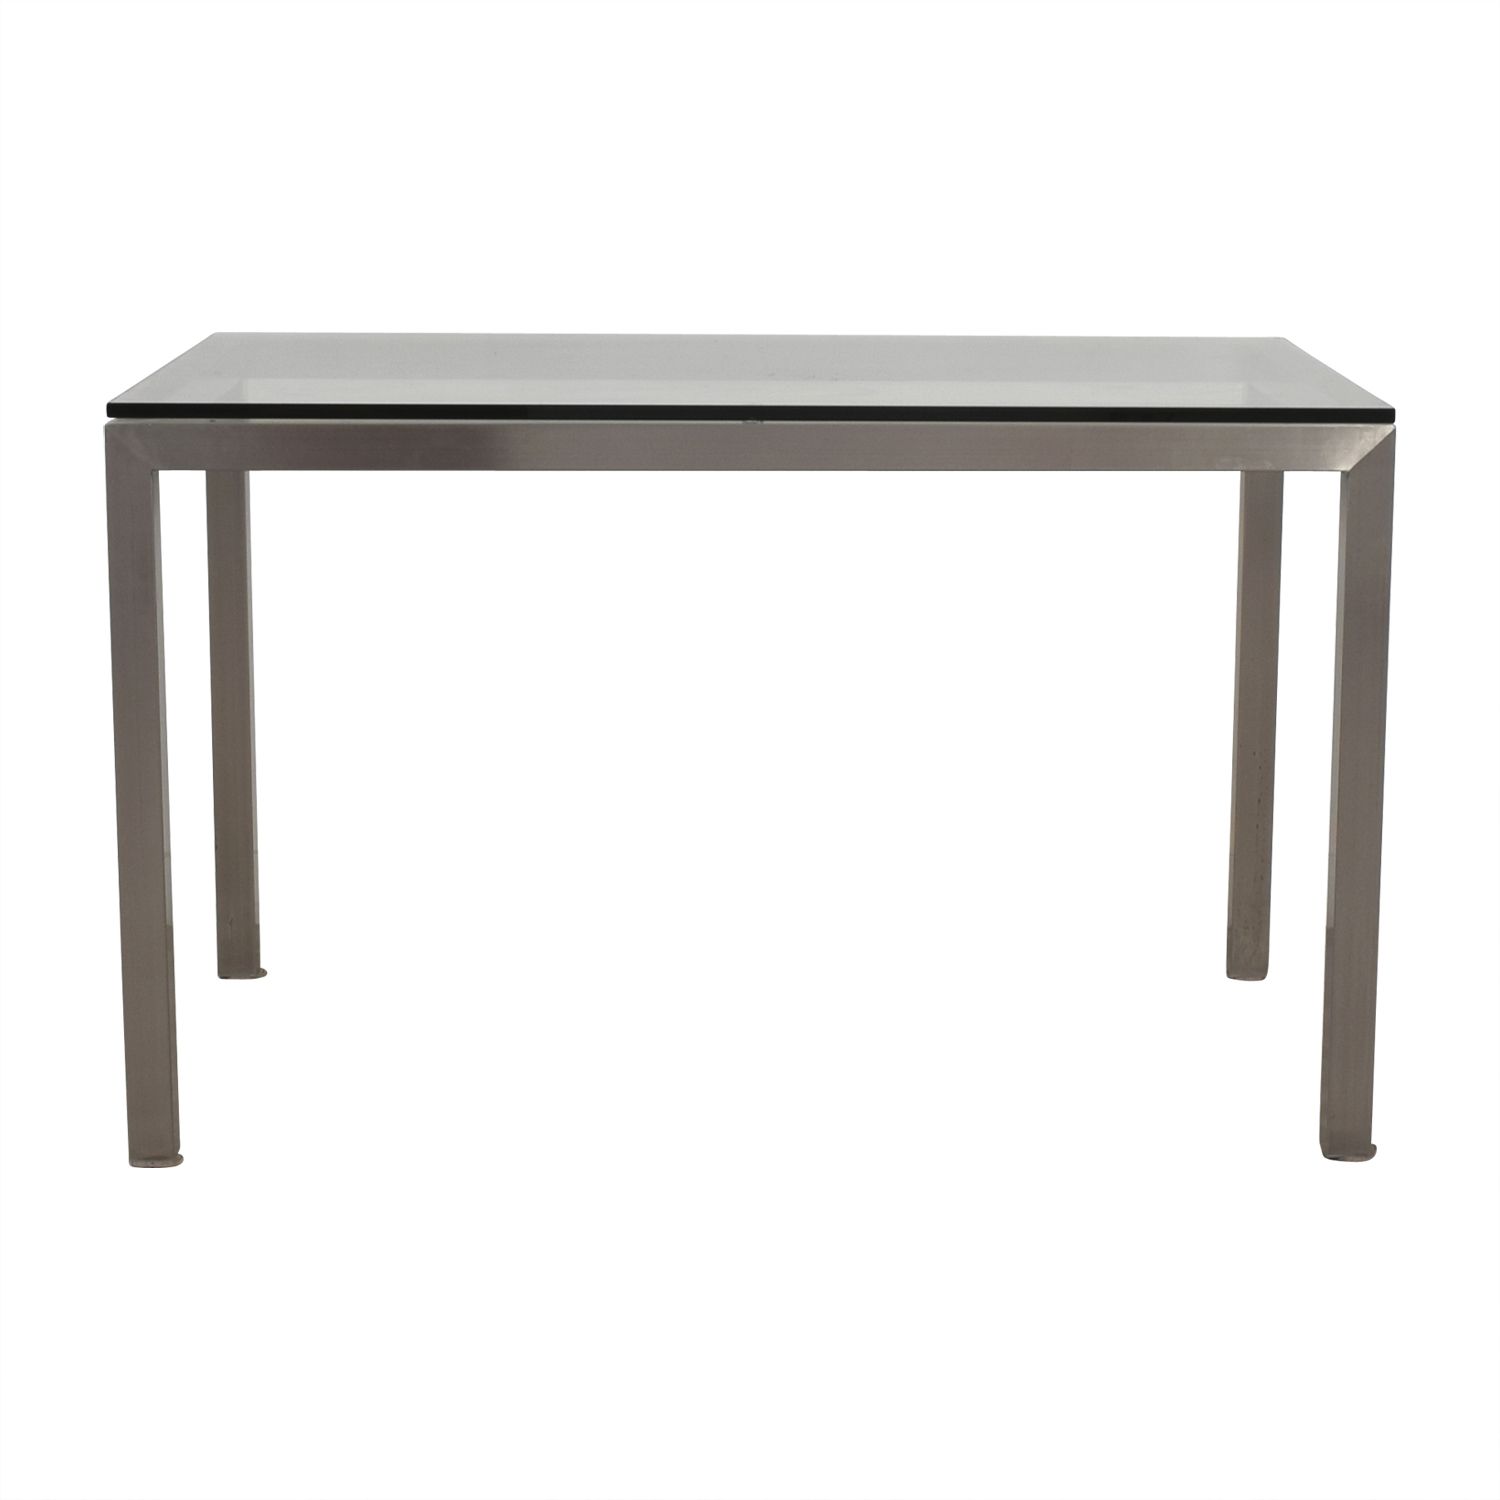 Crate U0026 Barrel Crate U0026 Barrel Glass And Stainless Steel Dining Table Dinner  ...